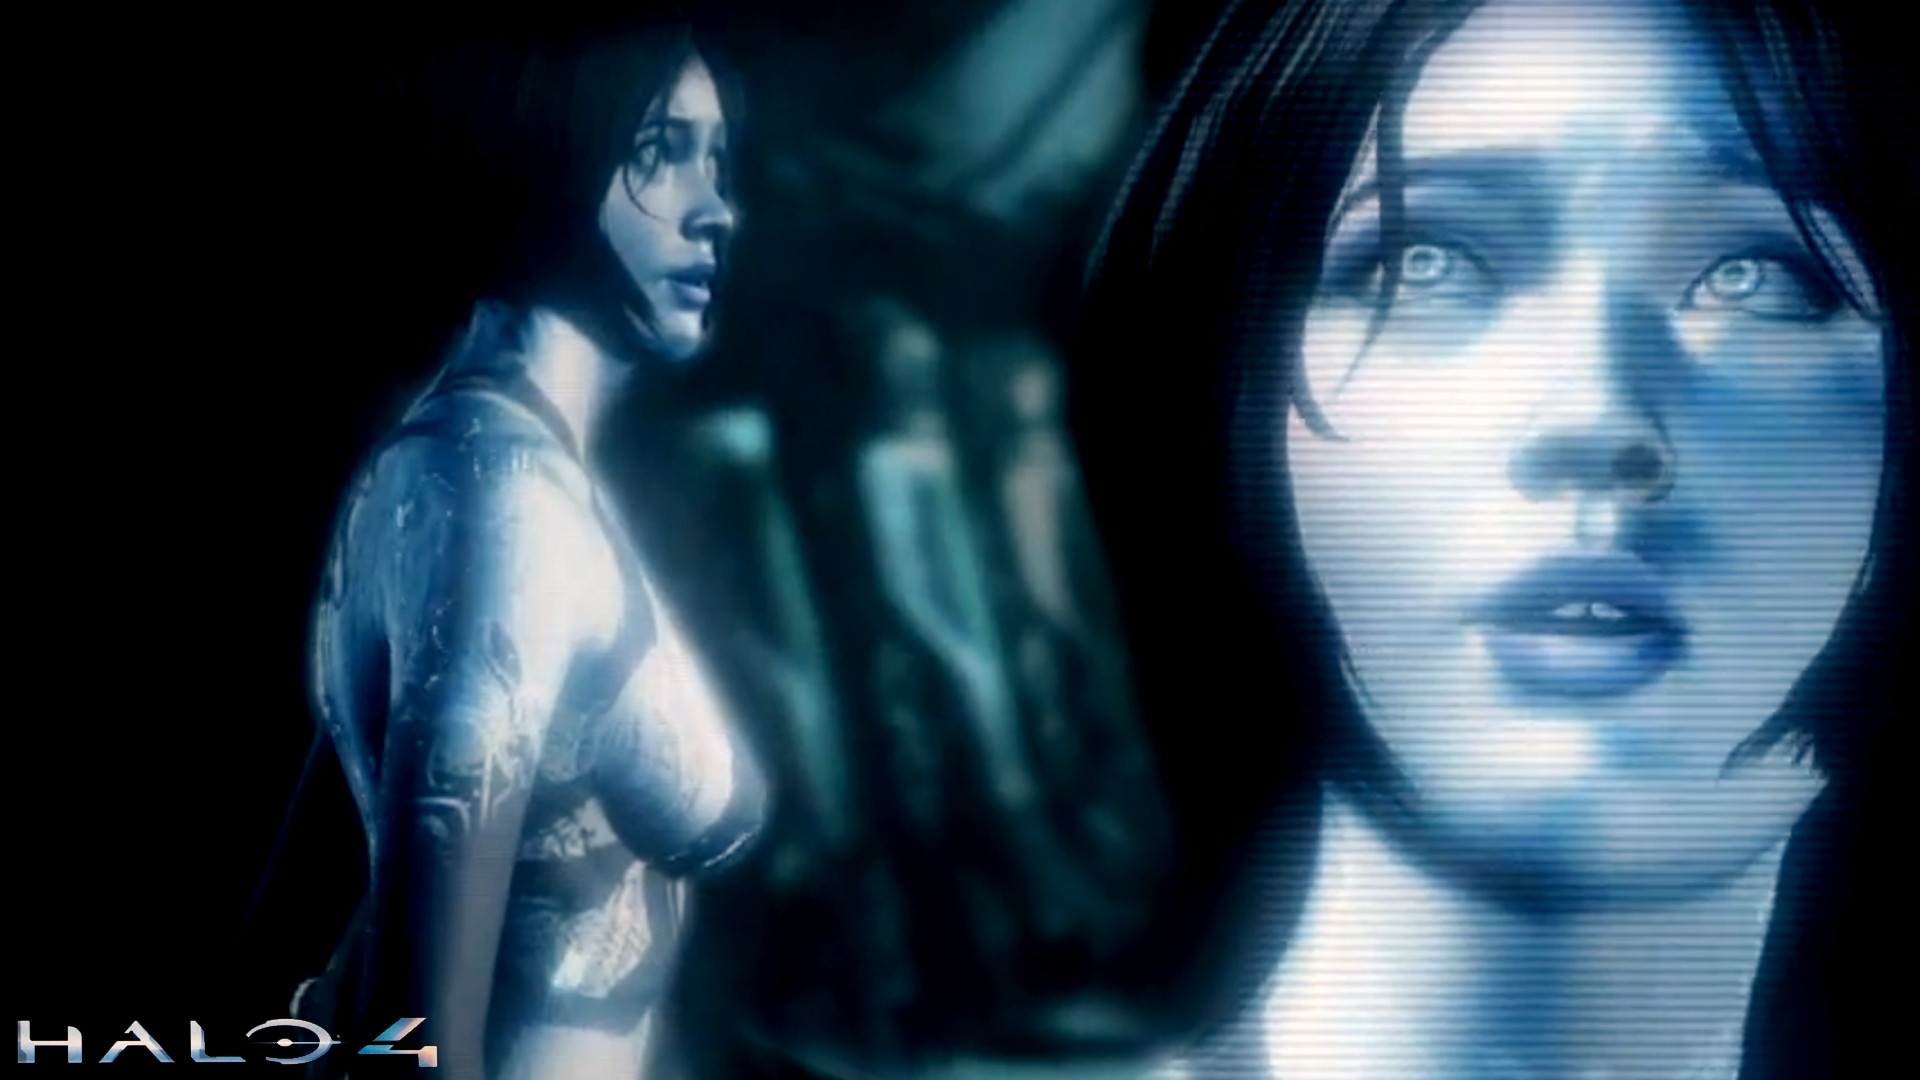 1920x1080 Download Halo 4 Cortana Wallpaper HD By Crowlad (2993) Full Size .